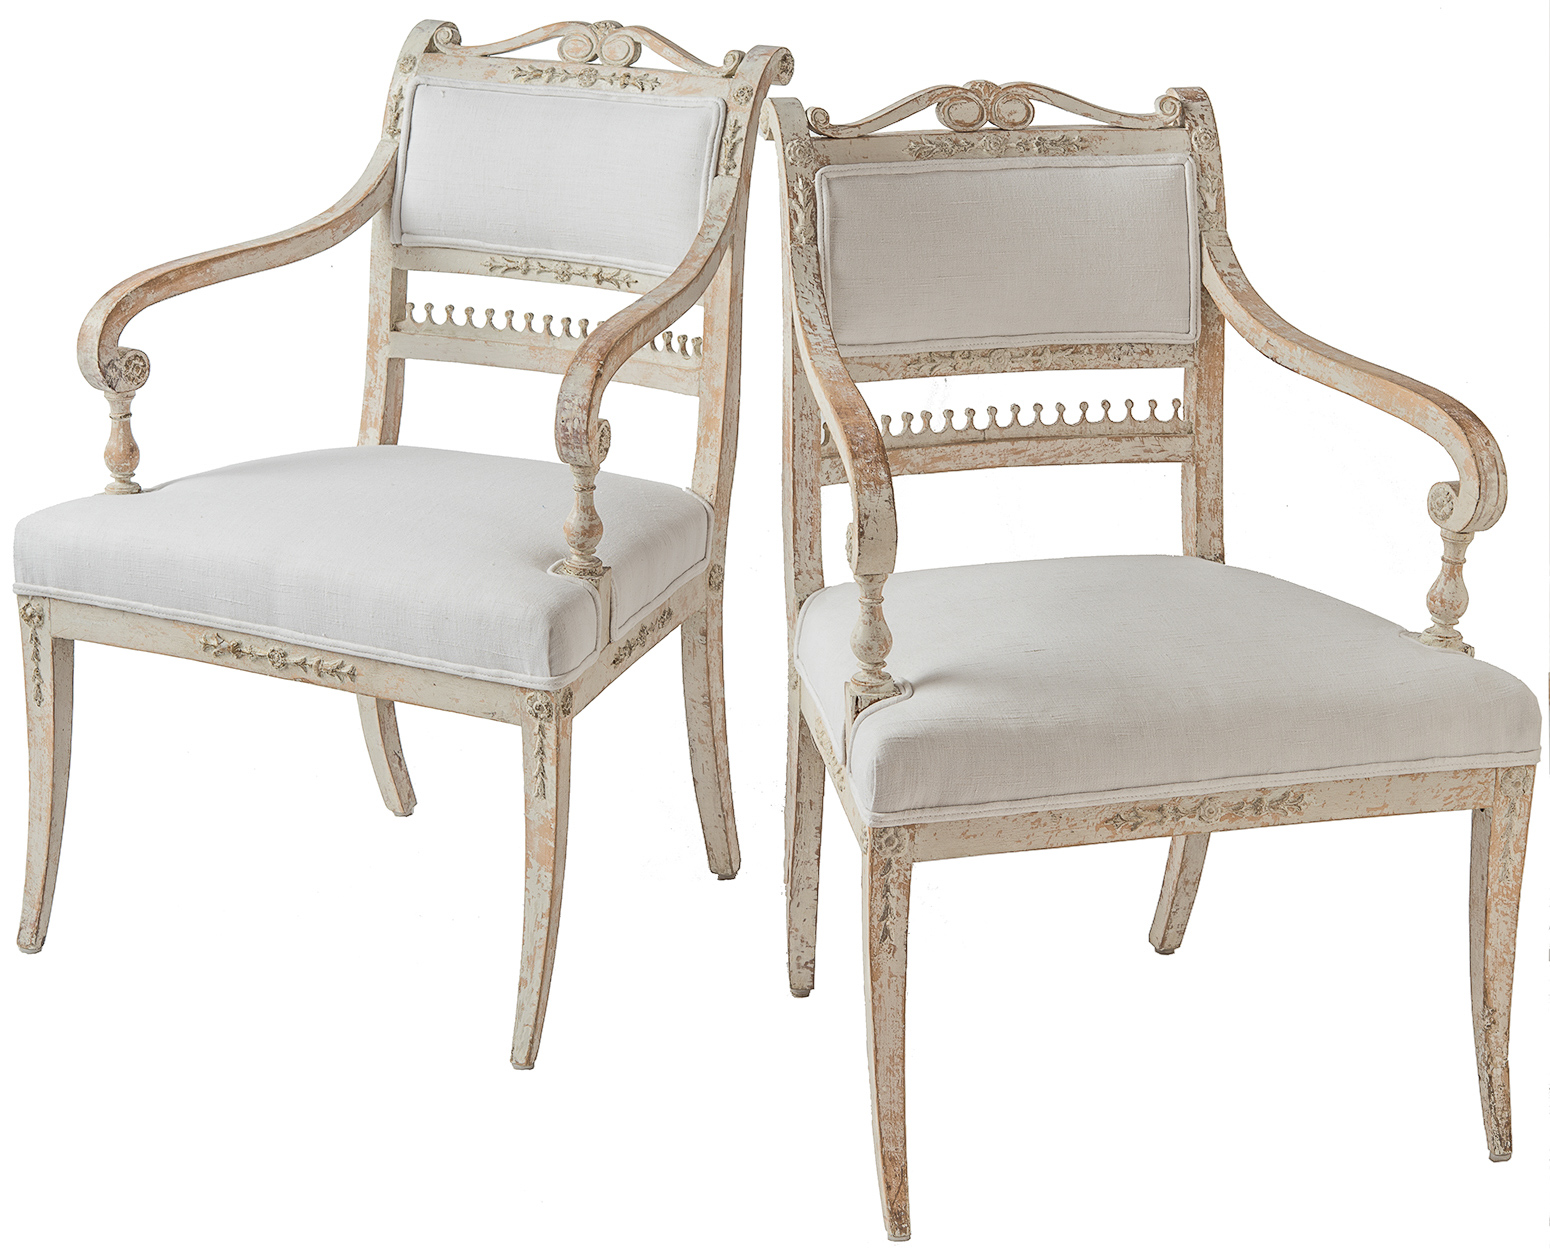 SOLD A Rare Pair of Gustavian Period Armchairs Circa 1800